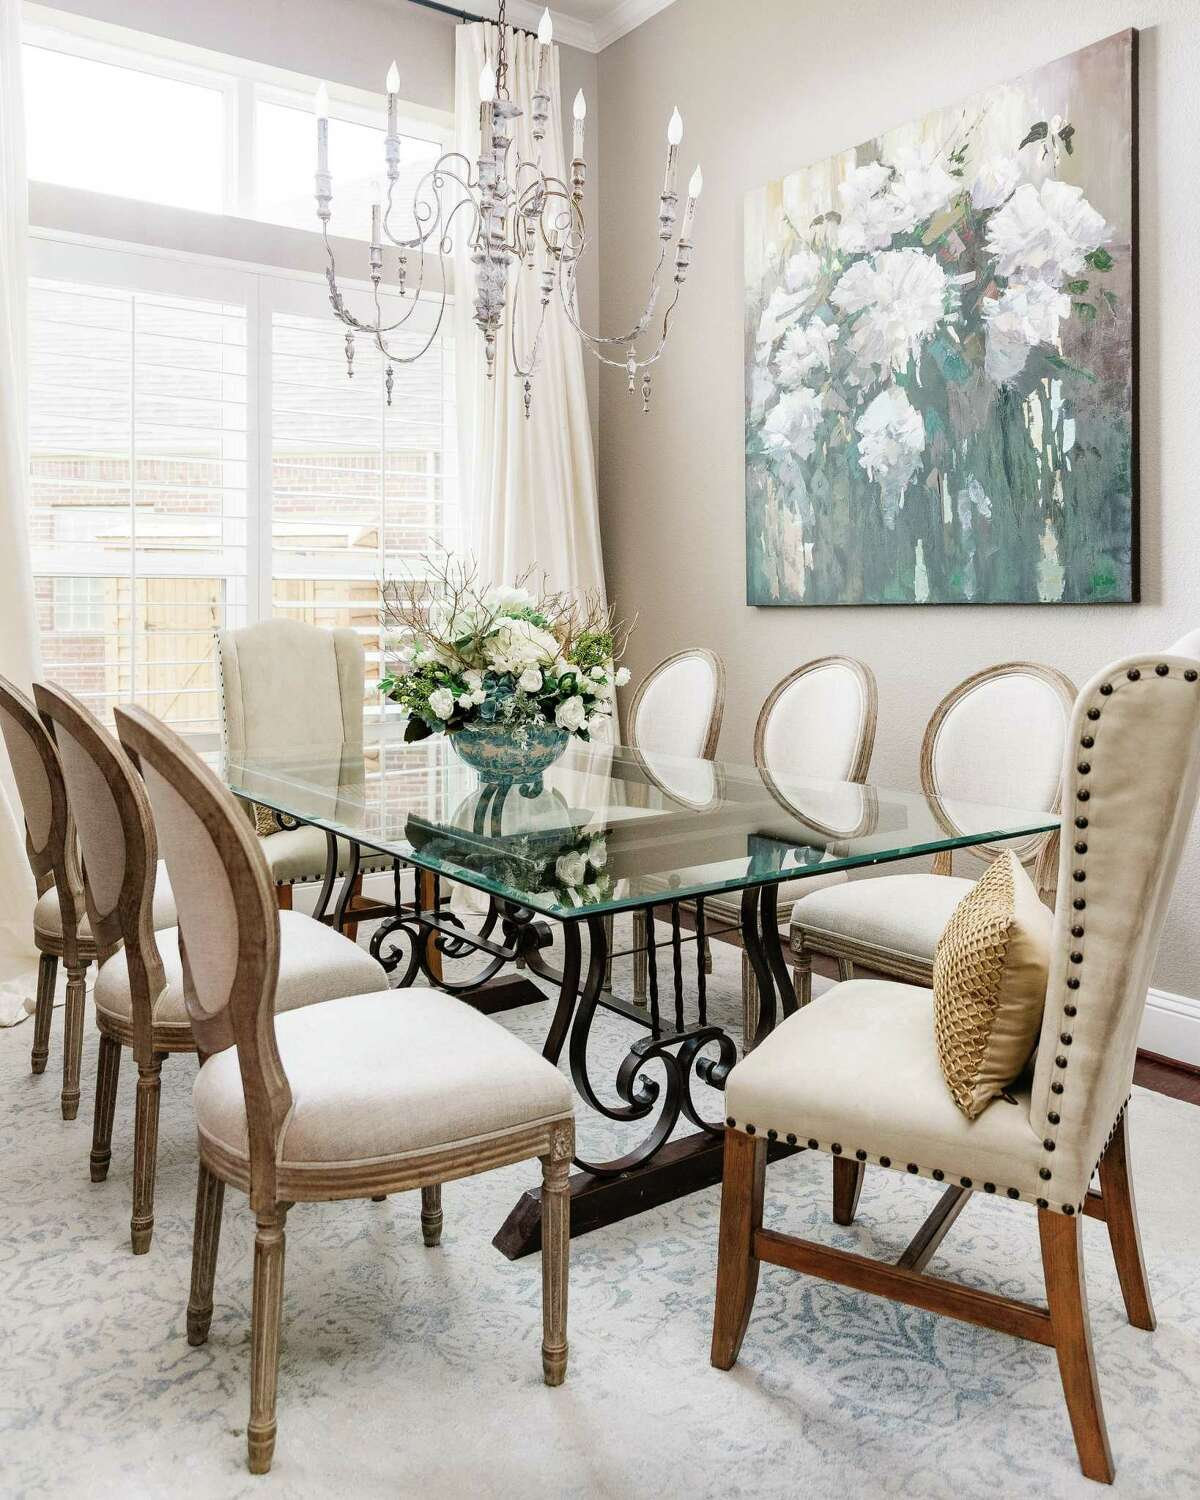 The dining room got a big makeover. While the Whites kept their glass-topped table, they added new window treatments, chairs, chandelier, rug and a large painting.